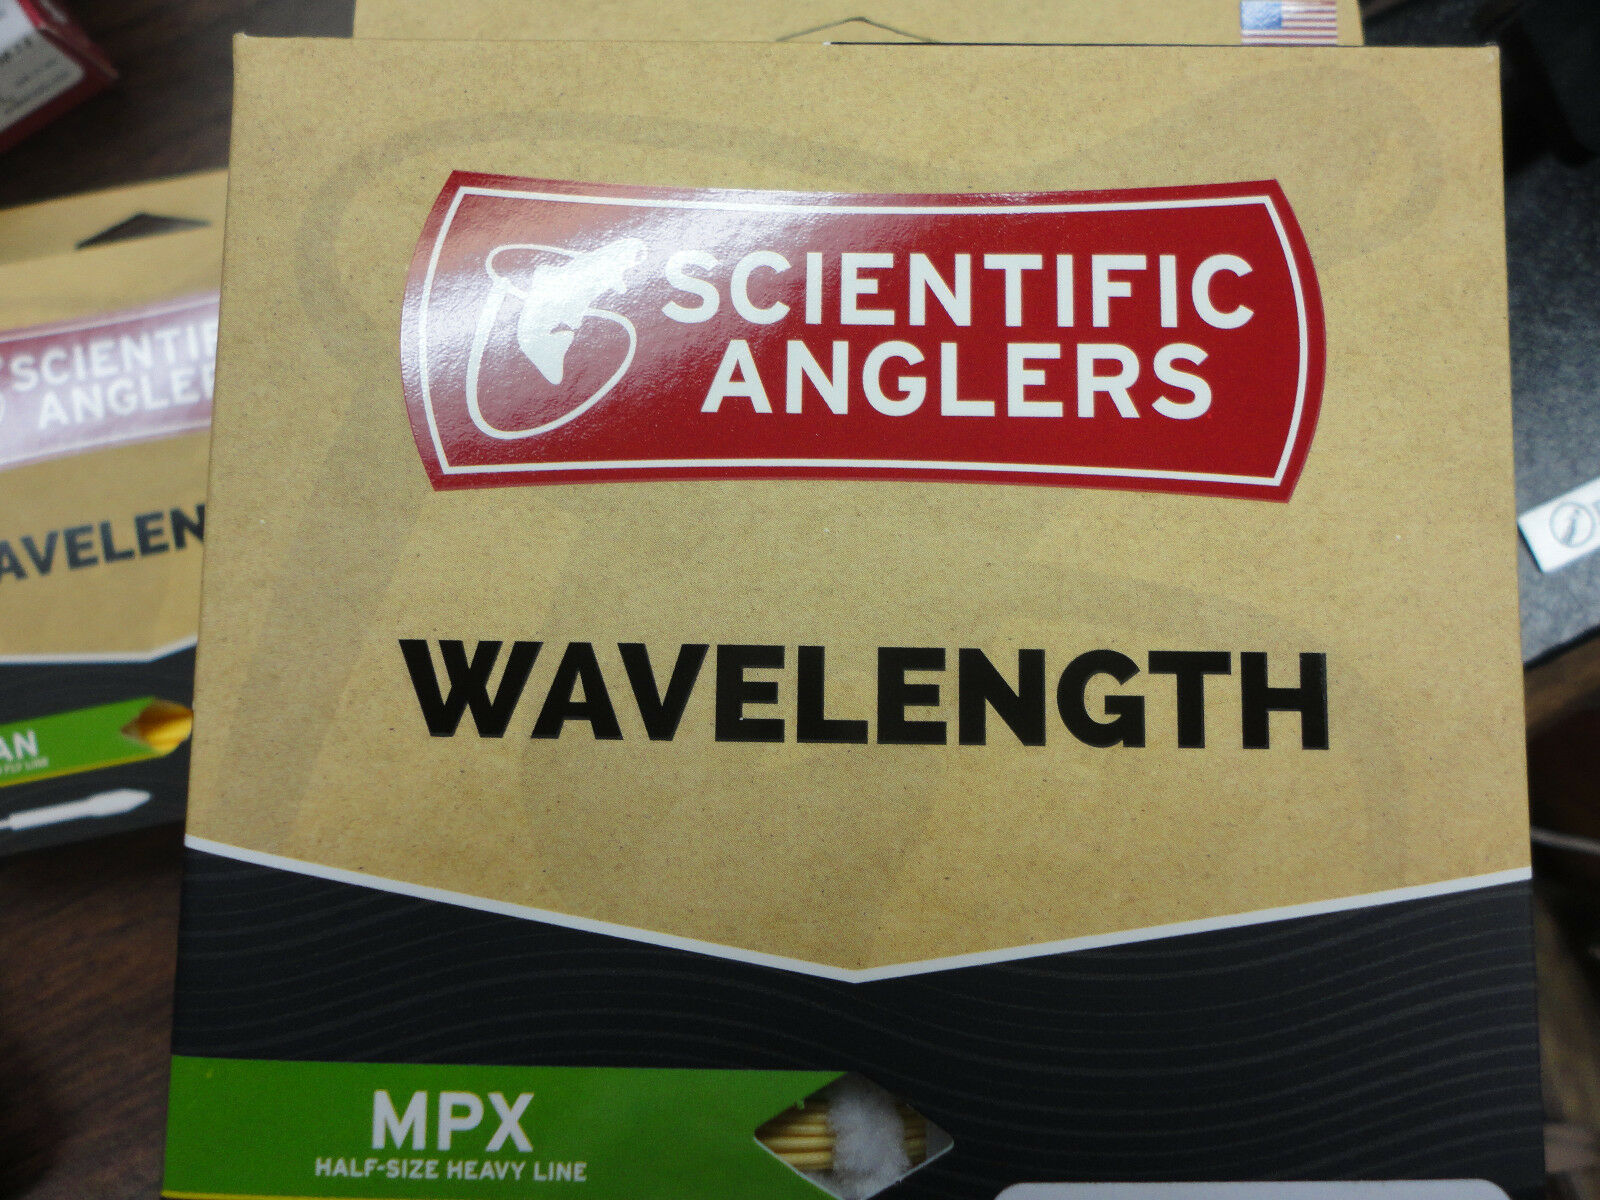 Scientific Anglers MPX Wavelength Series Fly Line WF-7-F Amber   Green